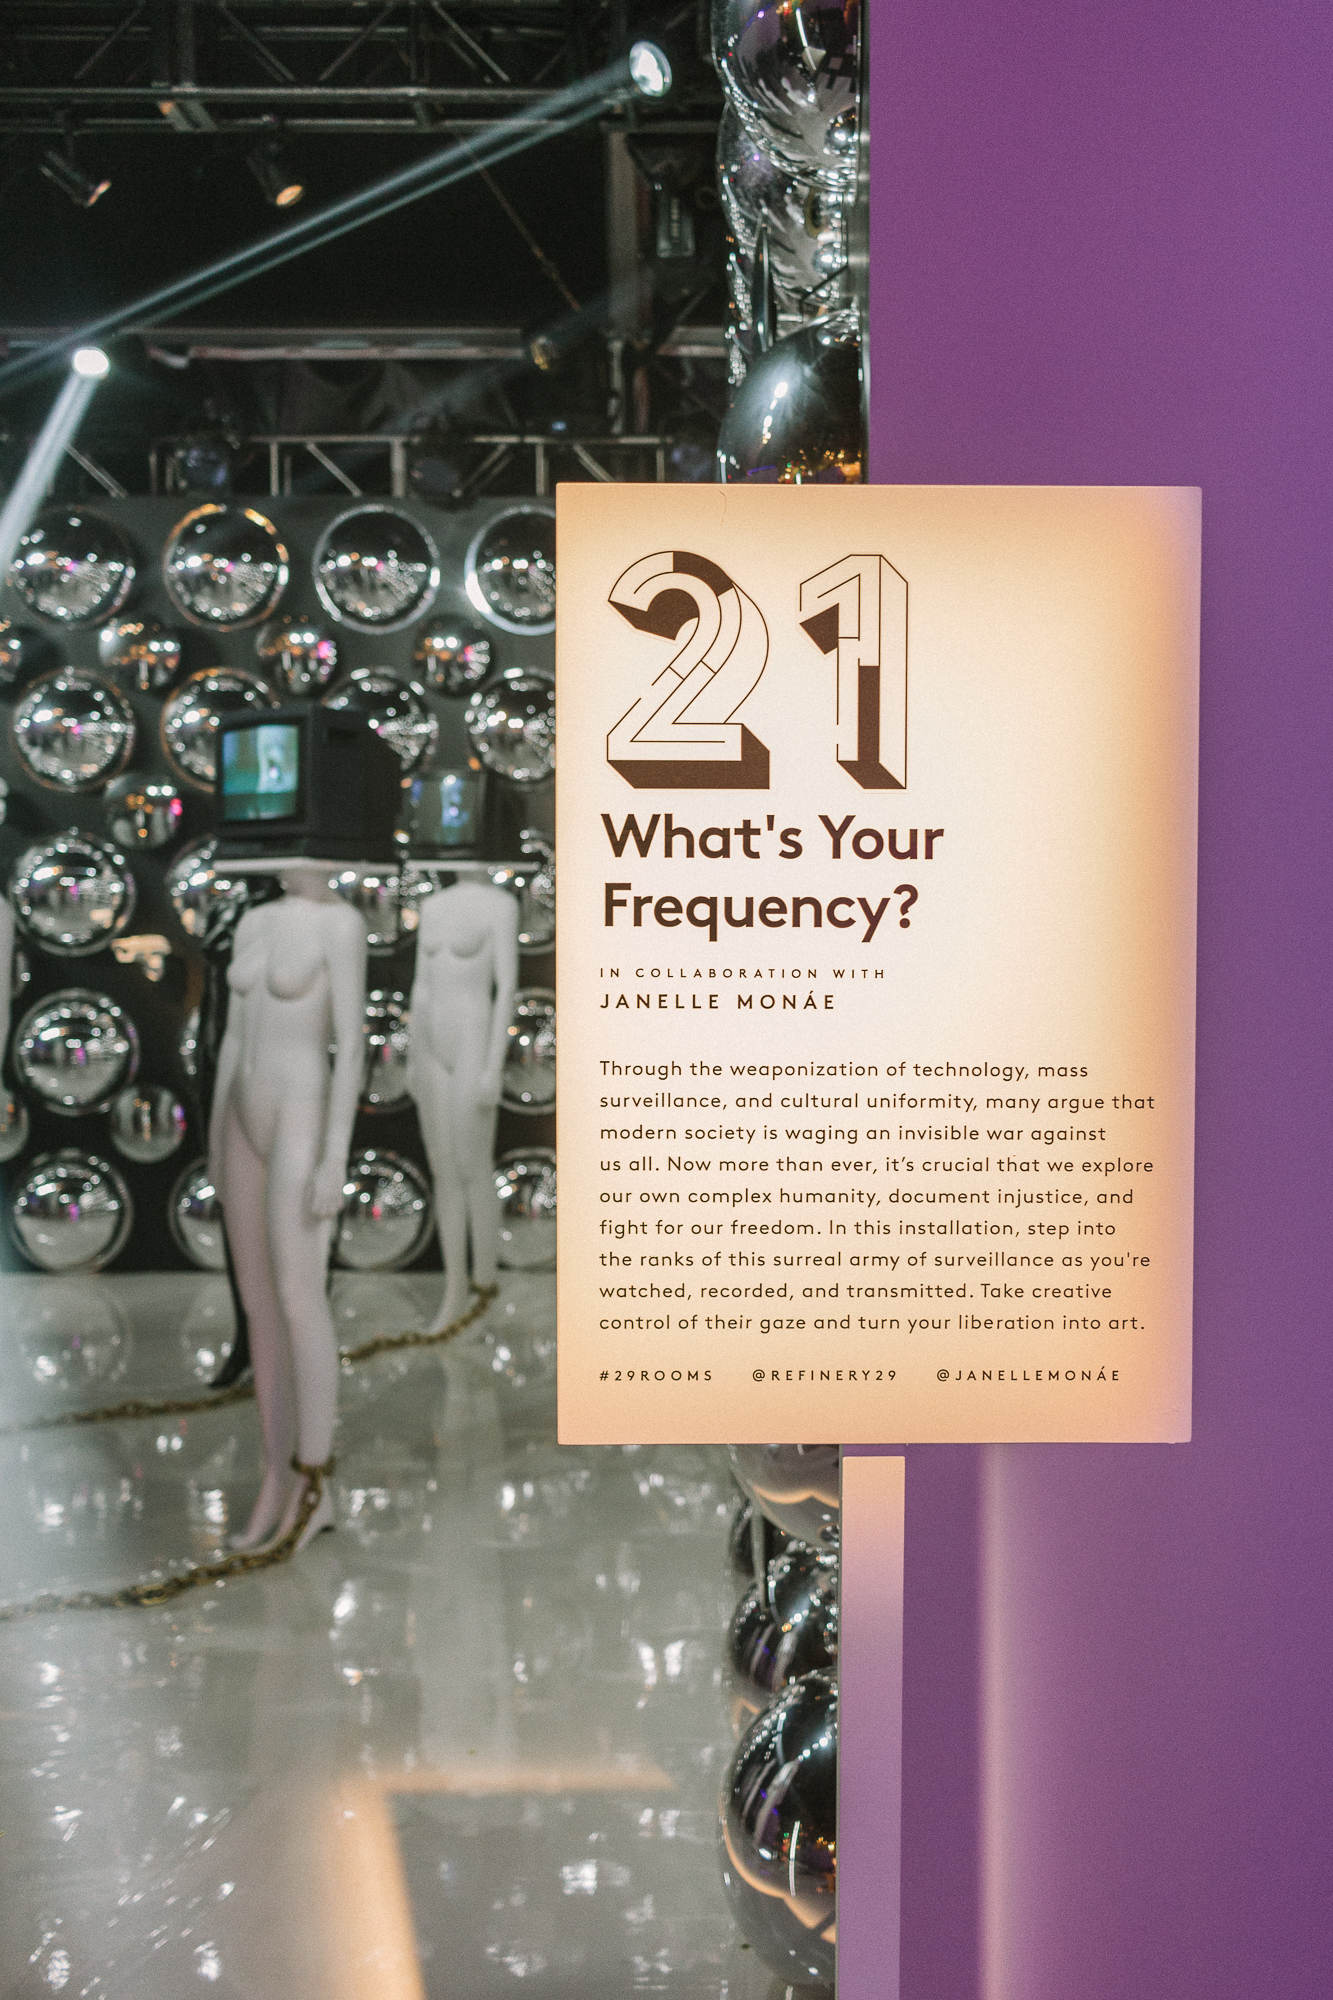 29Rooms from Refinery29 7